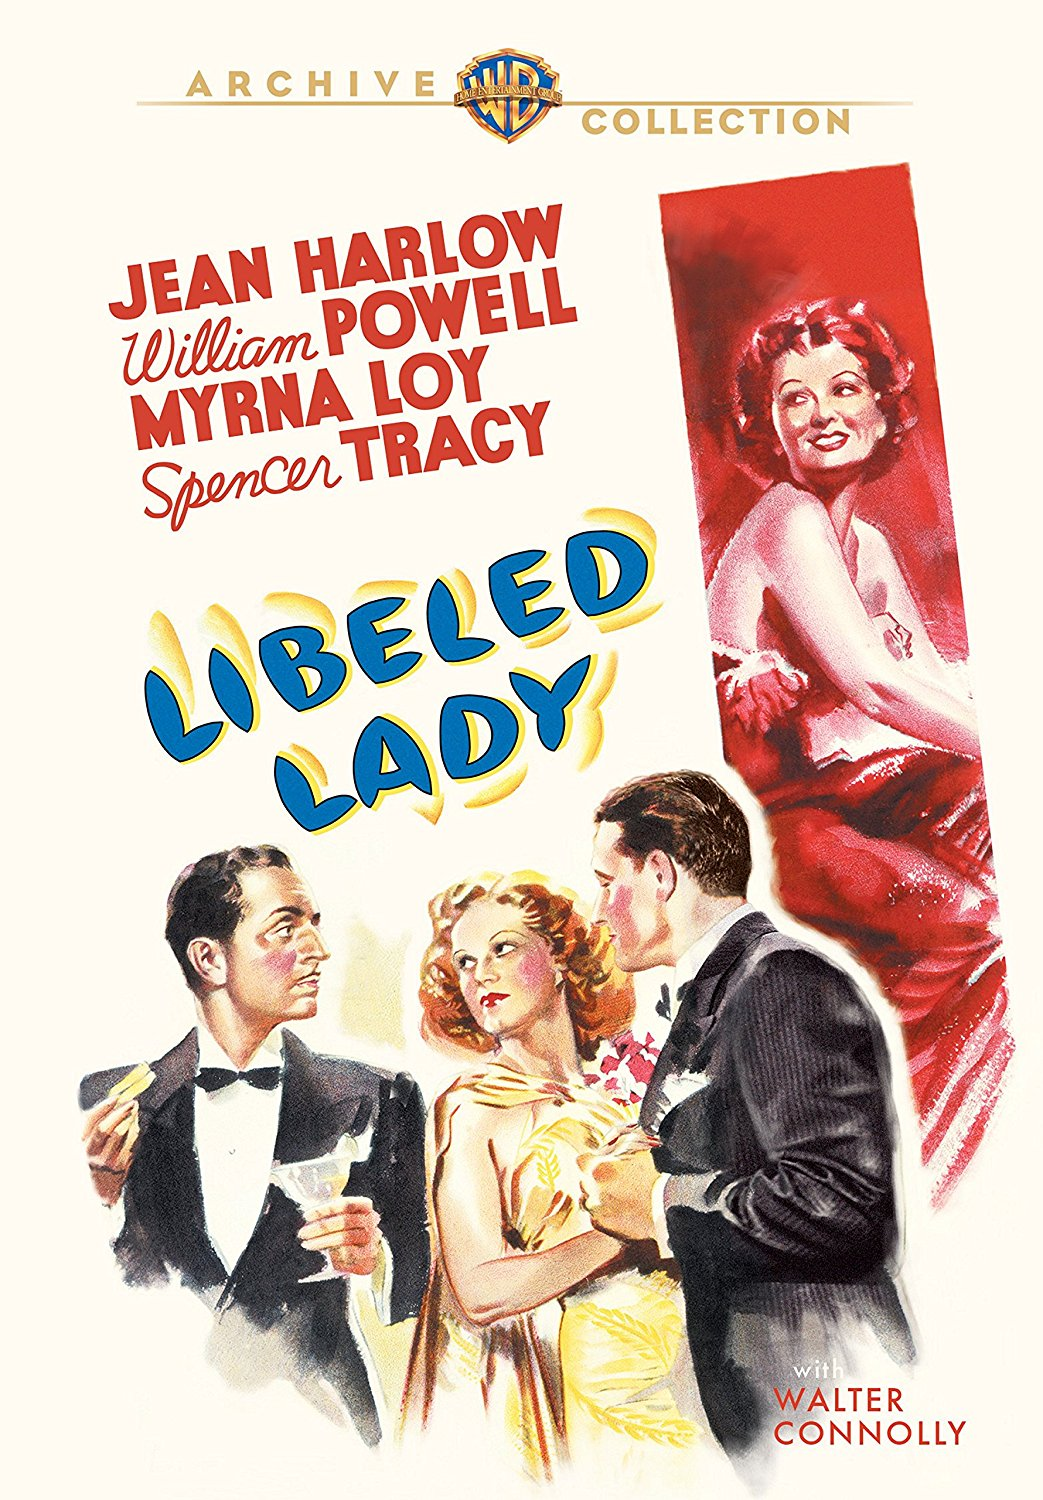 Libeled Lady (1936) starring Spencer Tracy, Myrna Loy, William Powell, Jean Harlow